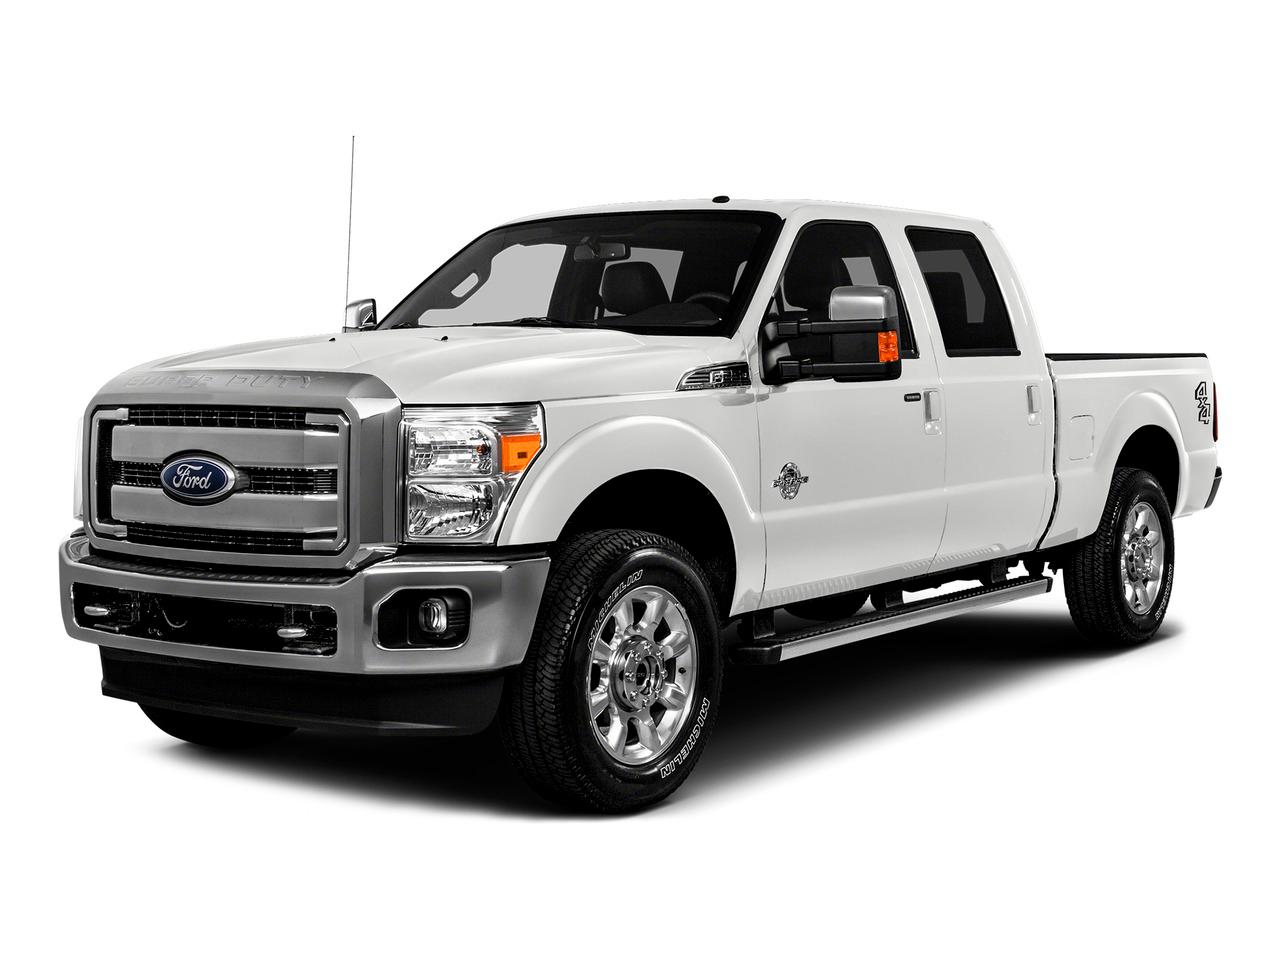 2016 Ford Super Duty F-250 SRW Vehicle Photo in Owensboro, KY 42303